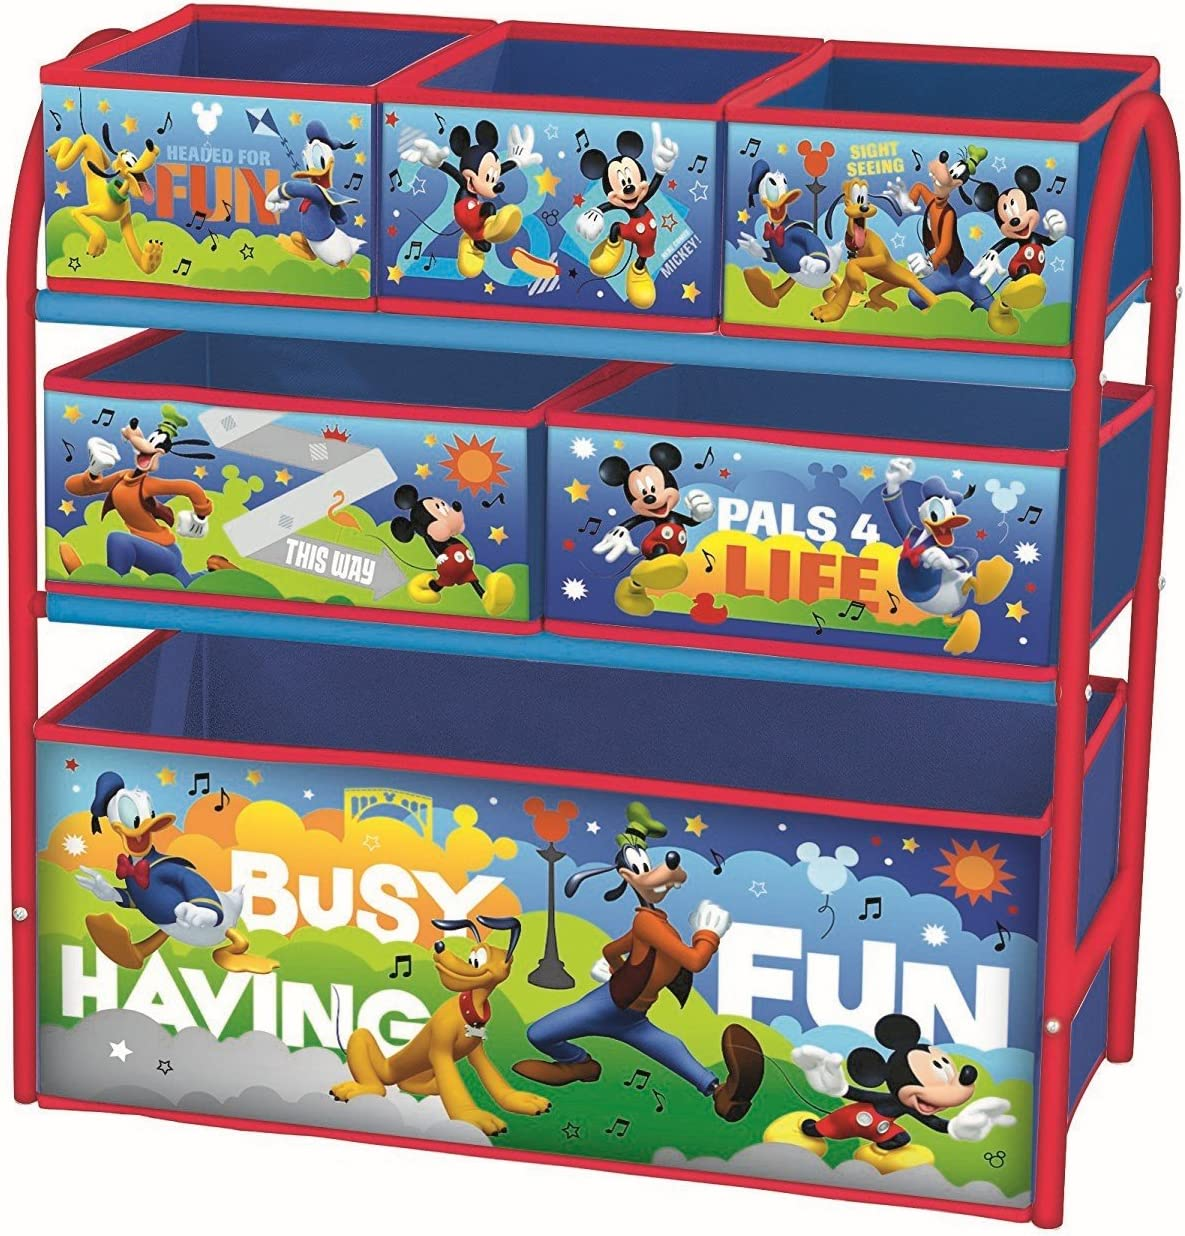 Kids Bedroom Playroom Furniture Minnie Mouse Childrens Toy Storage Box Organiser Metal Multi Tray Toy Chests Boxes